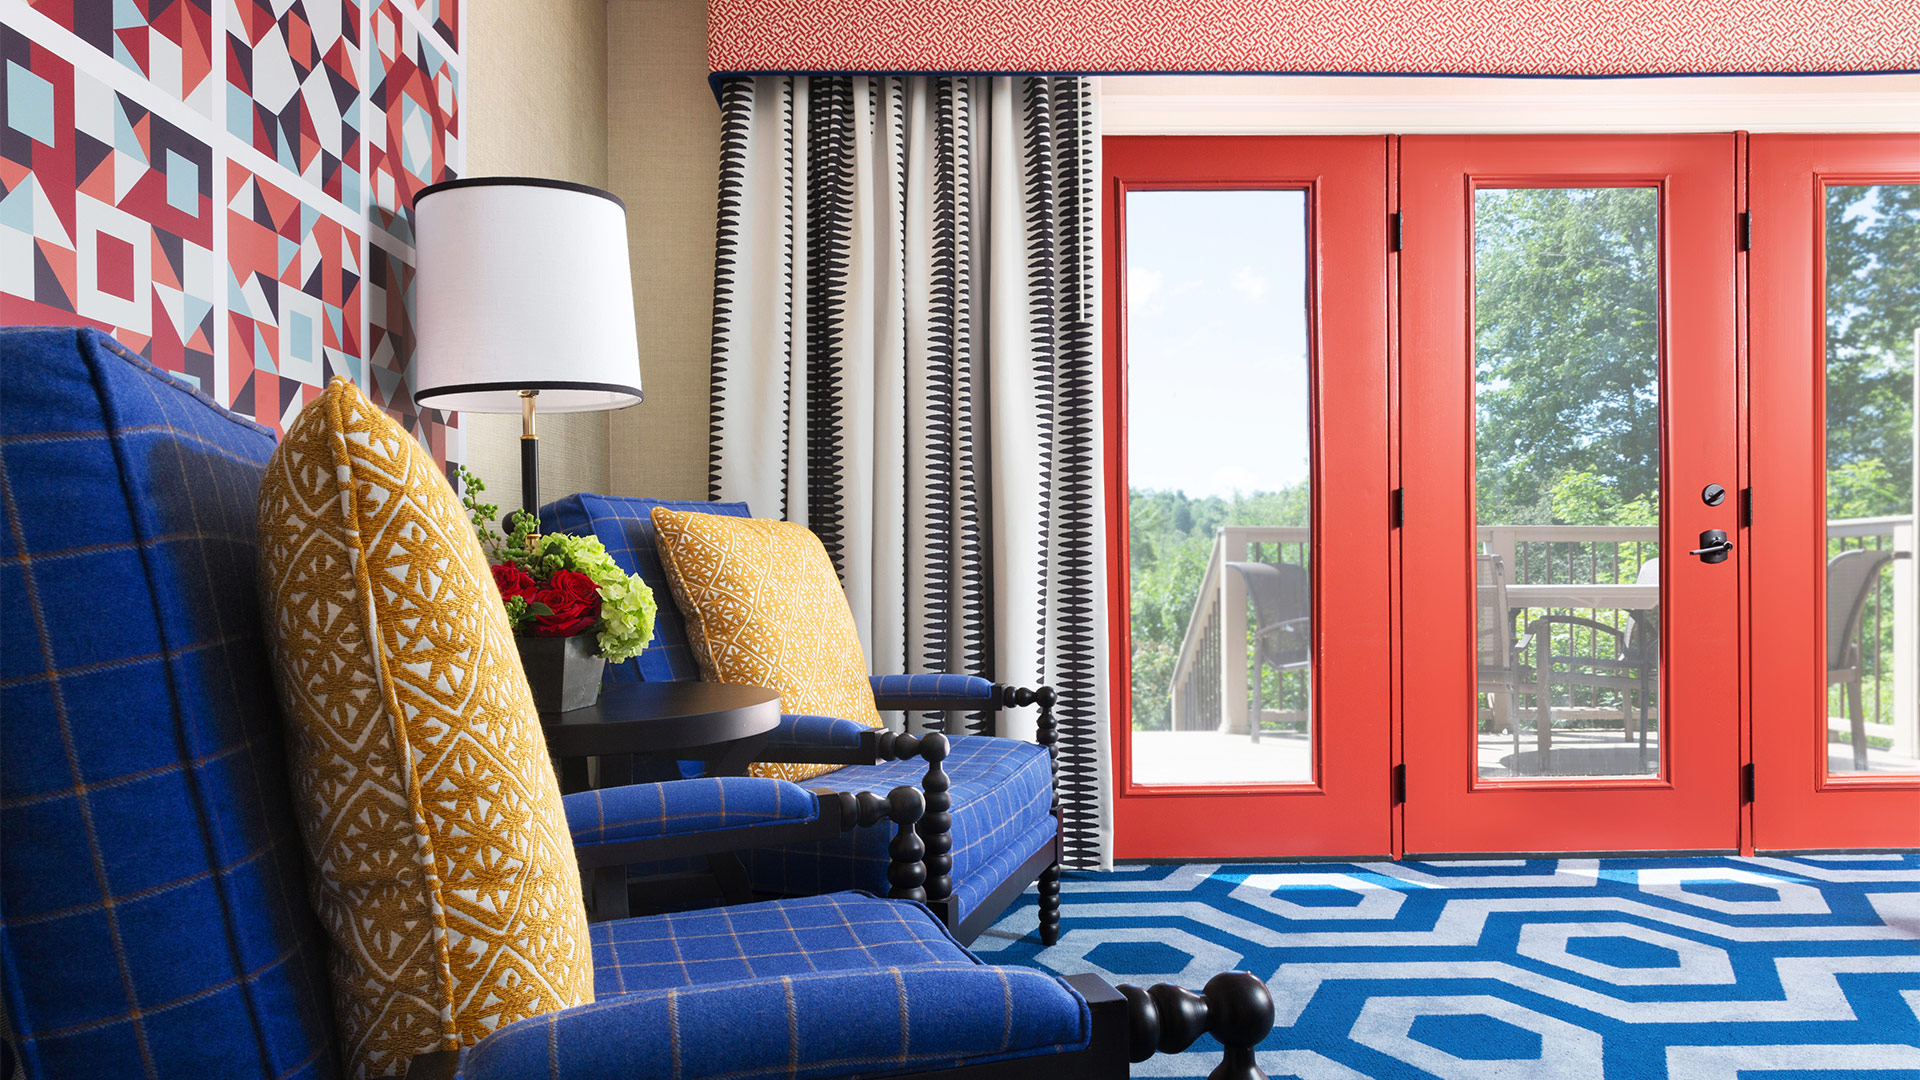 interior shot of a Washington townhome sitting area. There is a blue geometric rug, two blue chairs with yellow pillows. The room has red accents along the door and in some artwork behind the chairs.